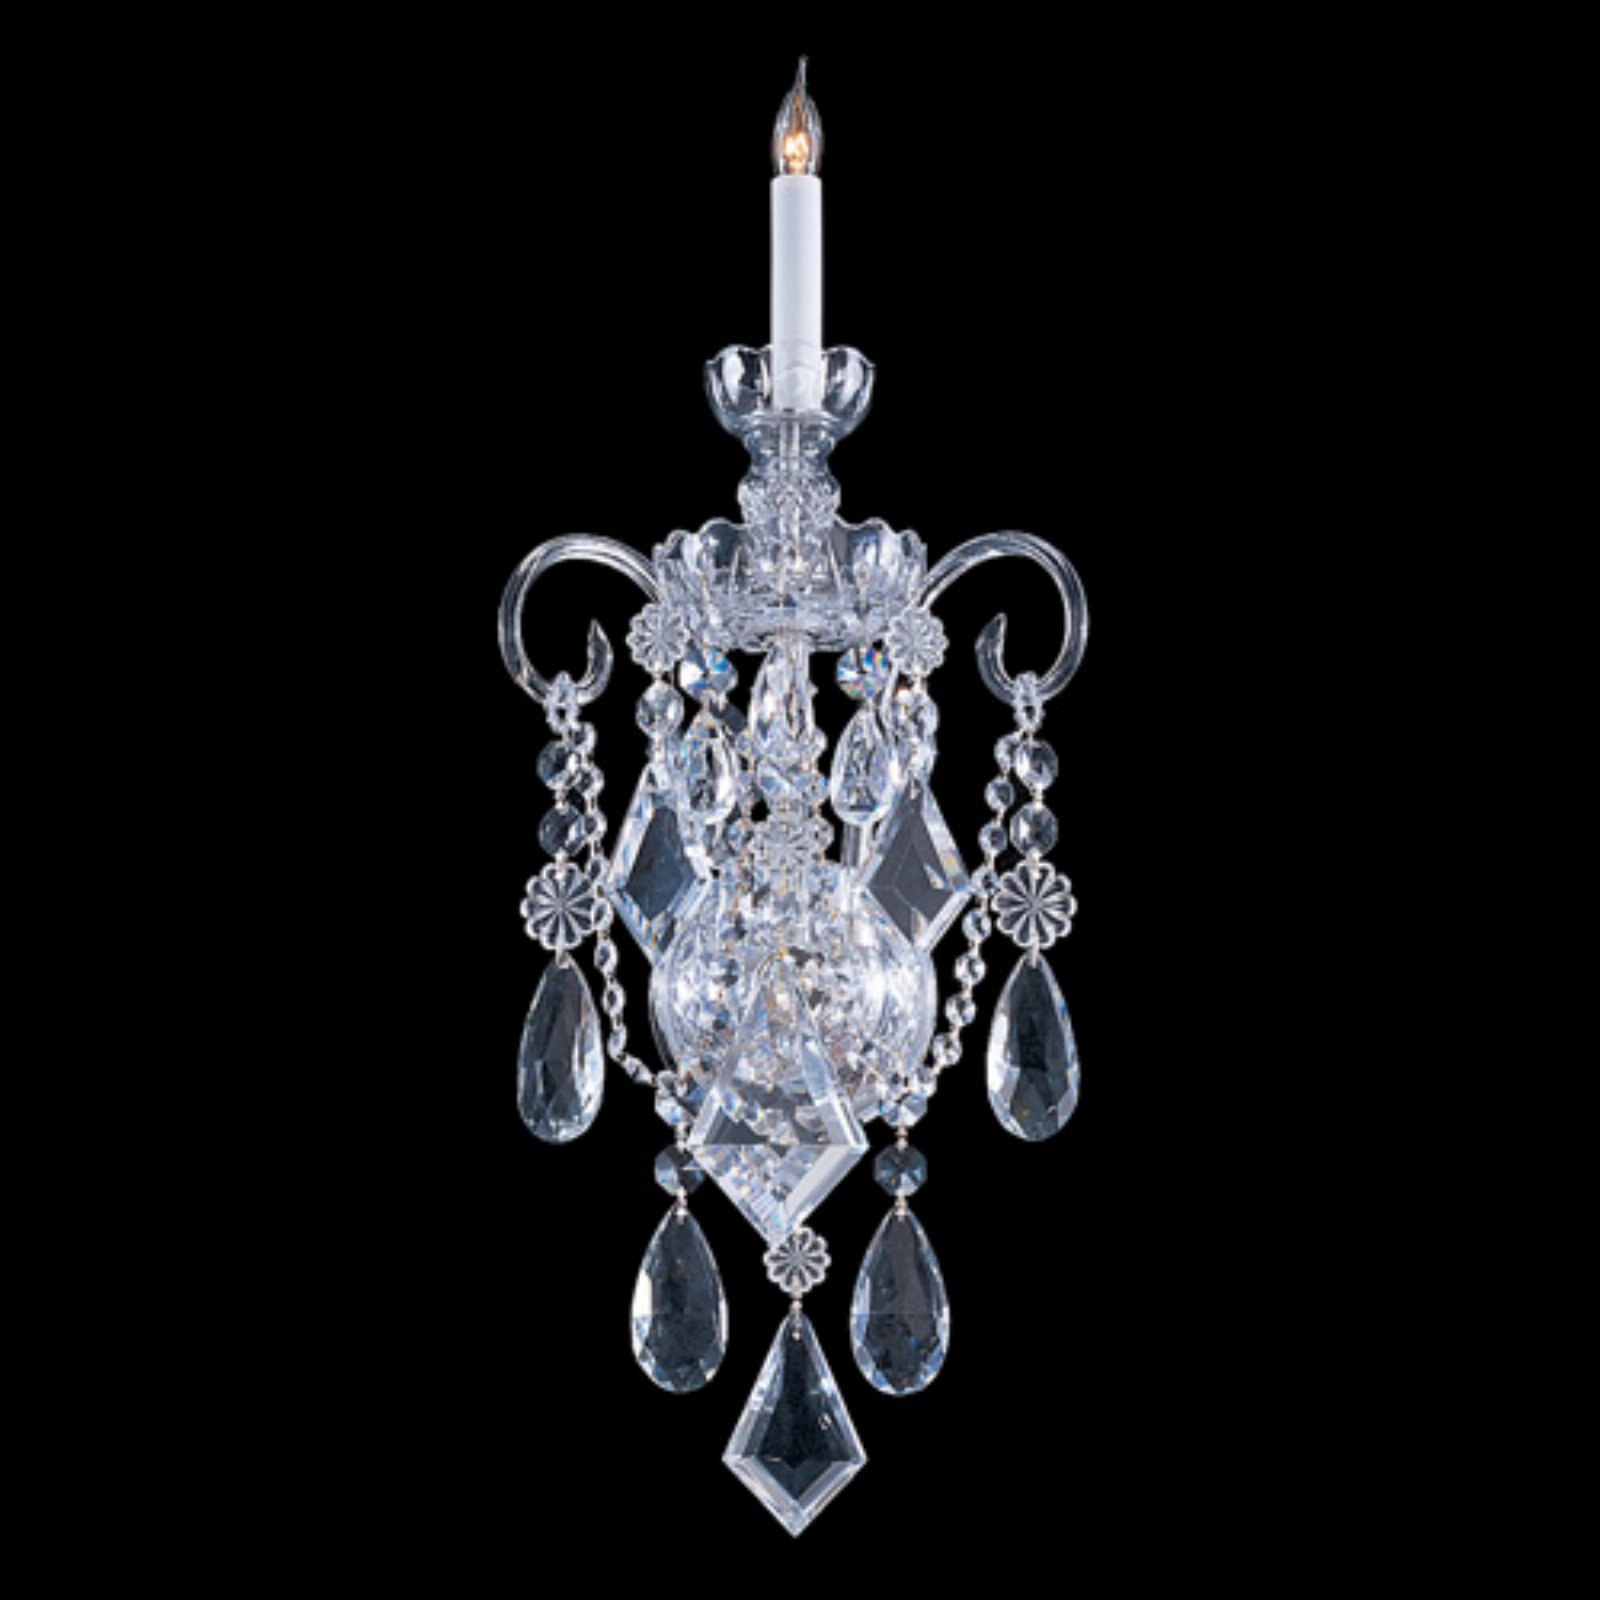 Crystorama 1041-CH-CL-MWP Traditional Crystal Wall Sconce 9.5W in. by Crystorama